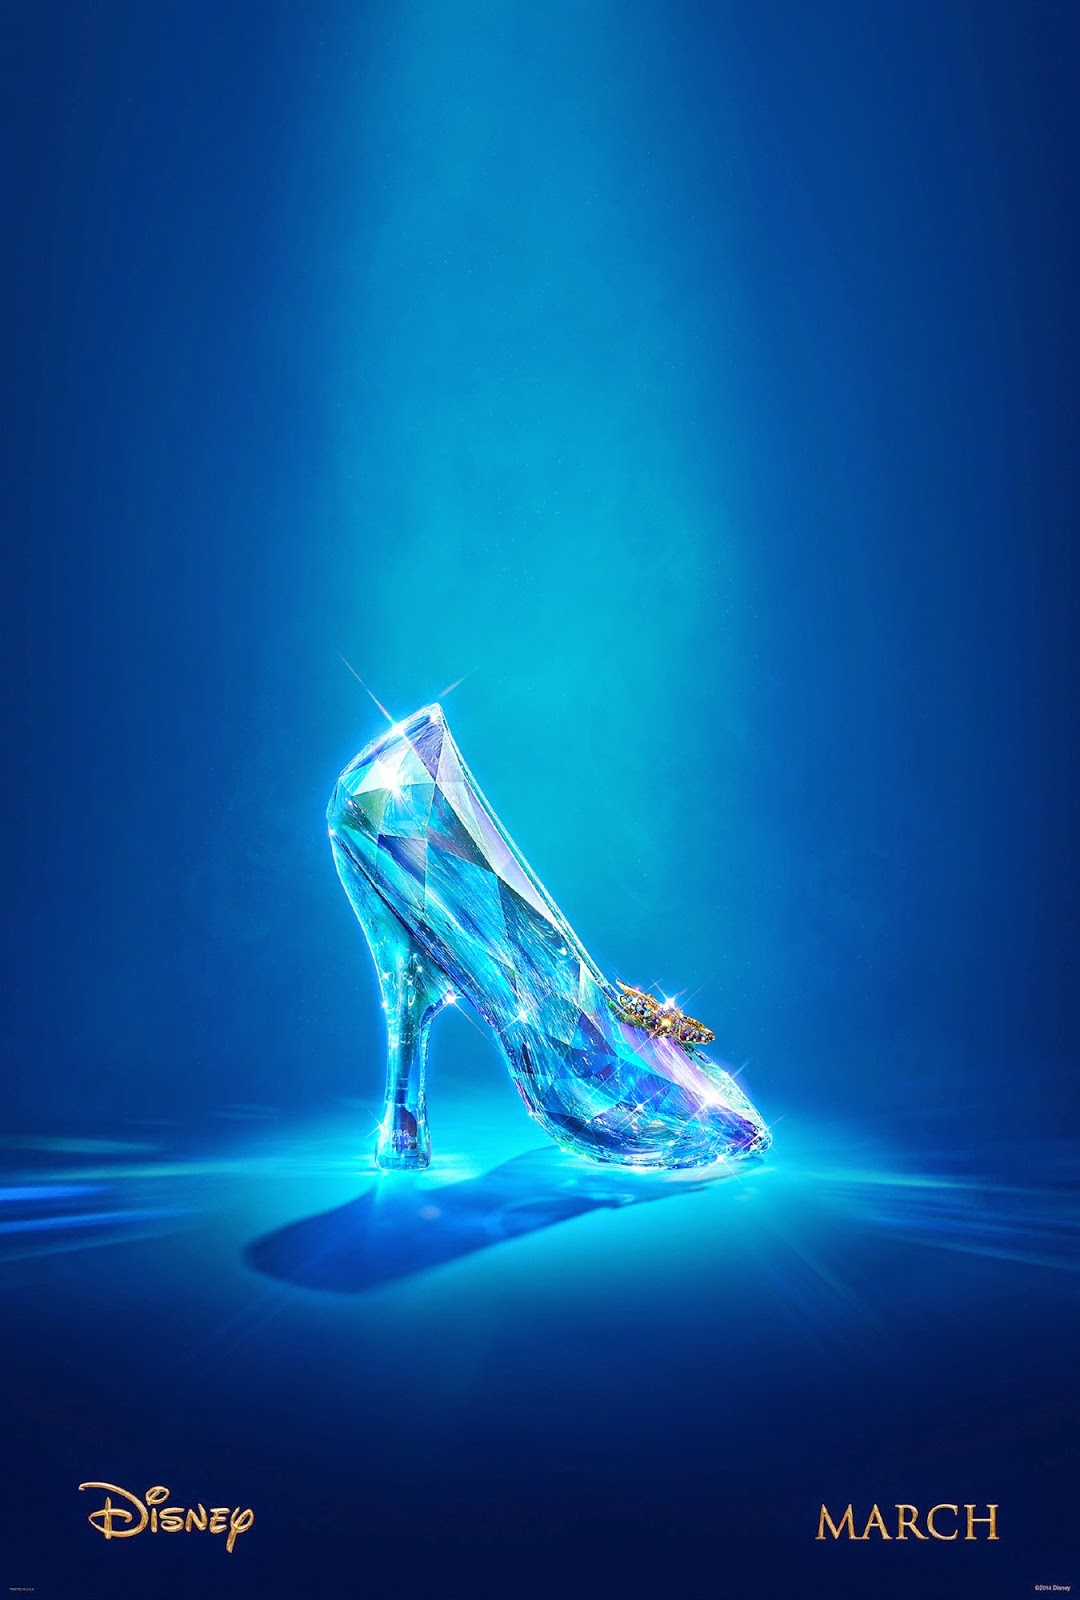 The fine art diner kindness courage cinderella 2015 what does the glass slipper symbolize we know feet symbolize the will and shoes then reveal to us what kind of will or what problems with the will biocorpaavc Gallery